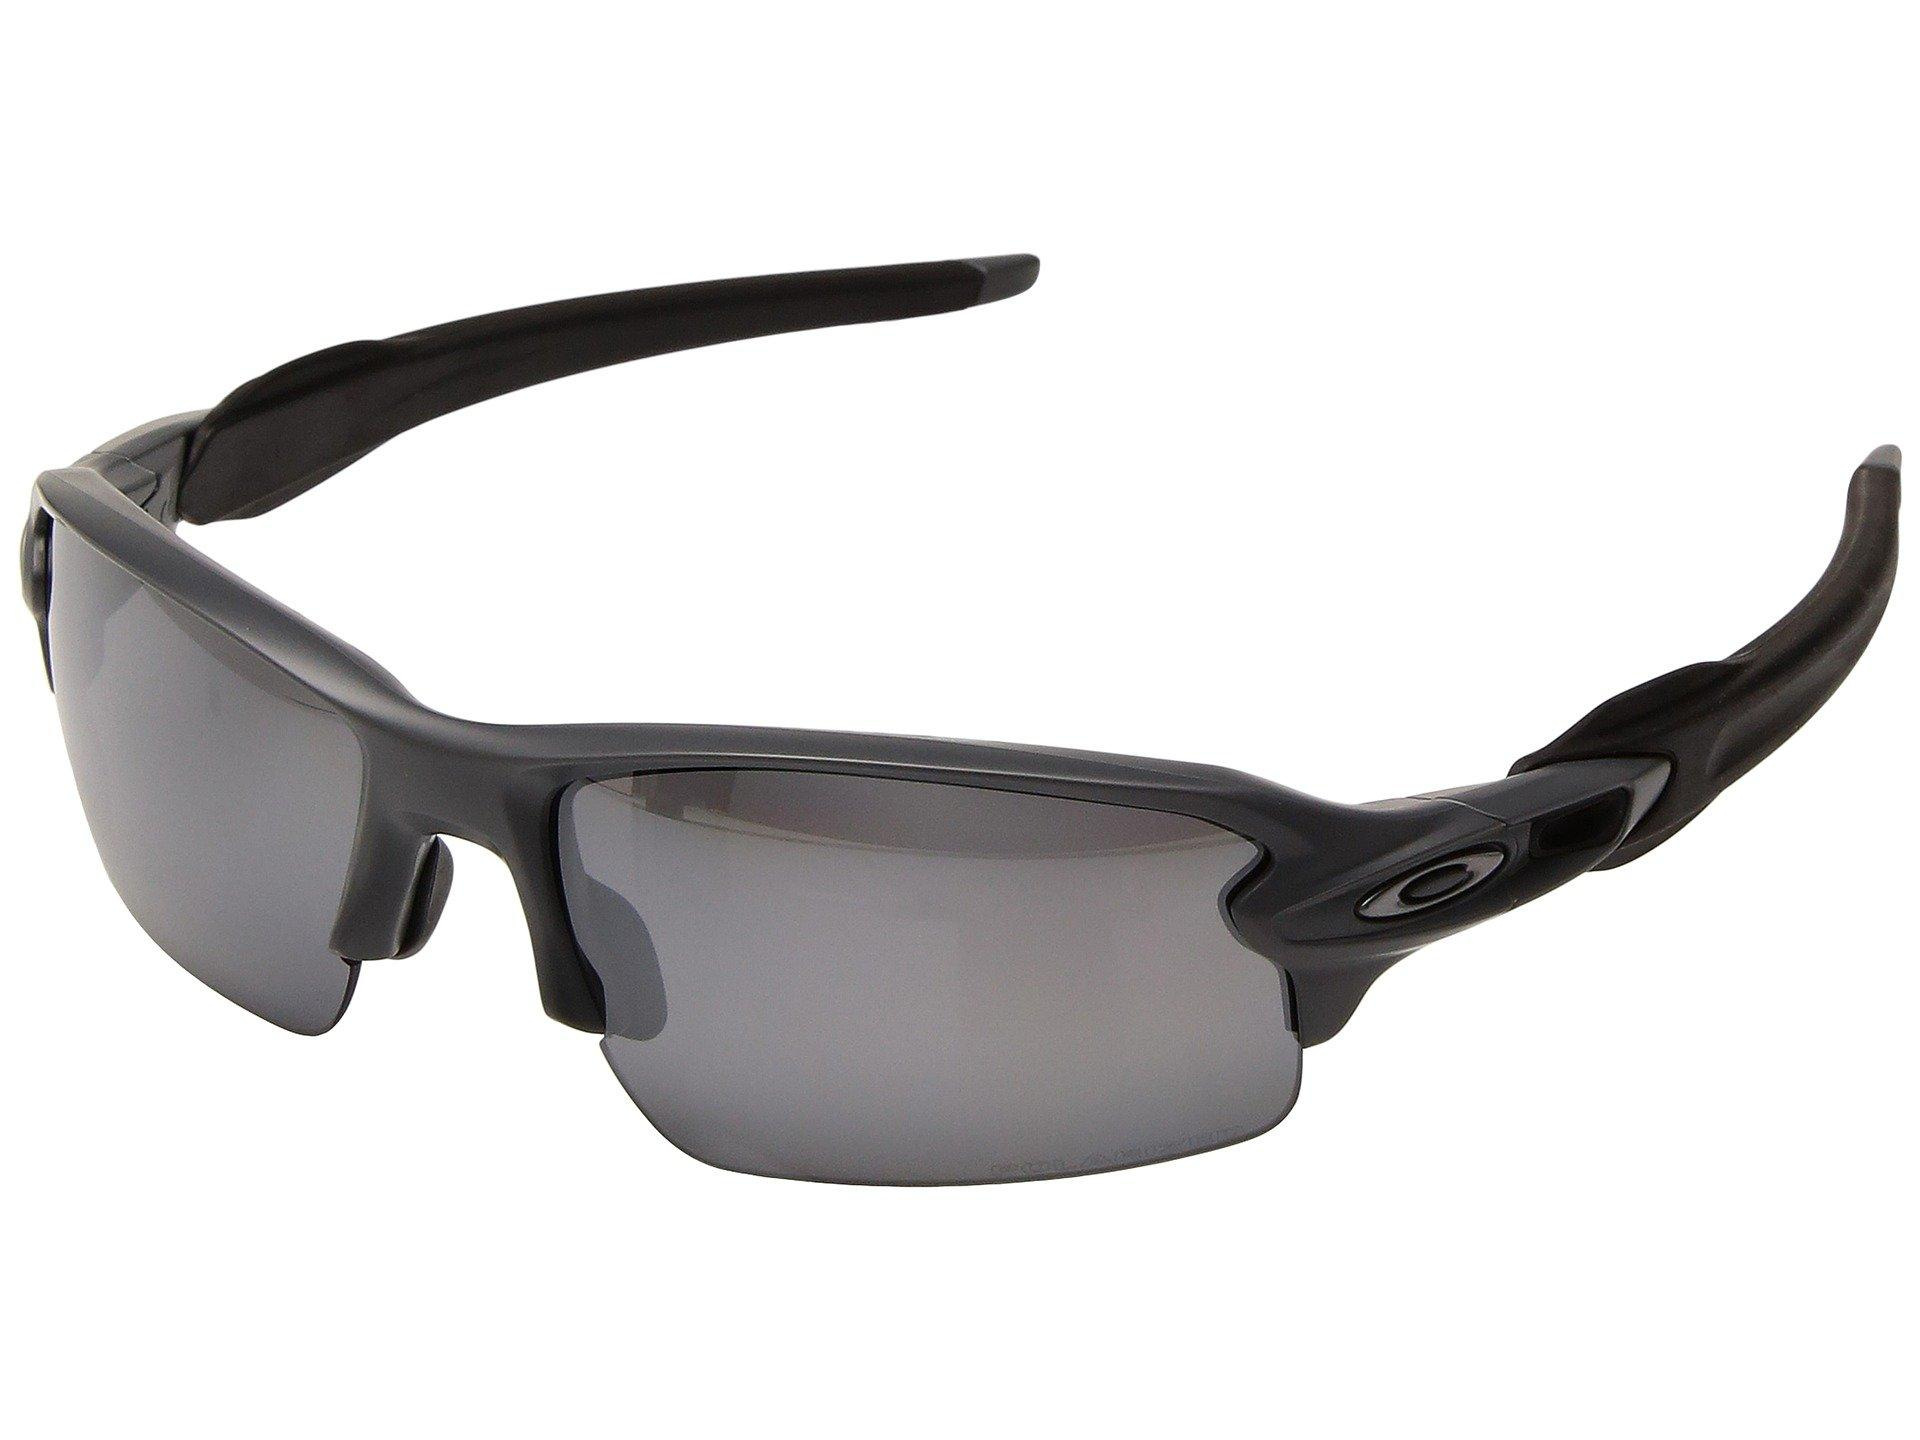 46374f447d5 Oakley Mph Flak 2.0 Polarized In Matte Heather Grey Black